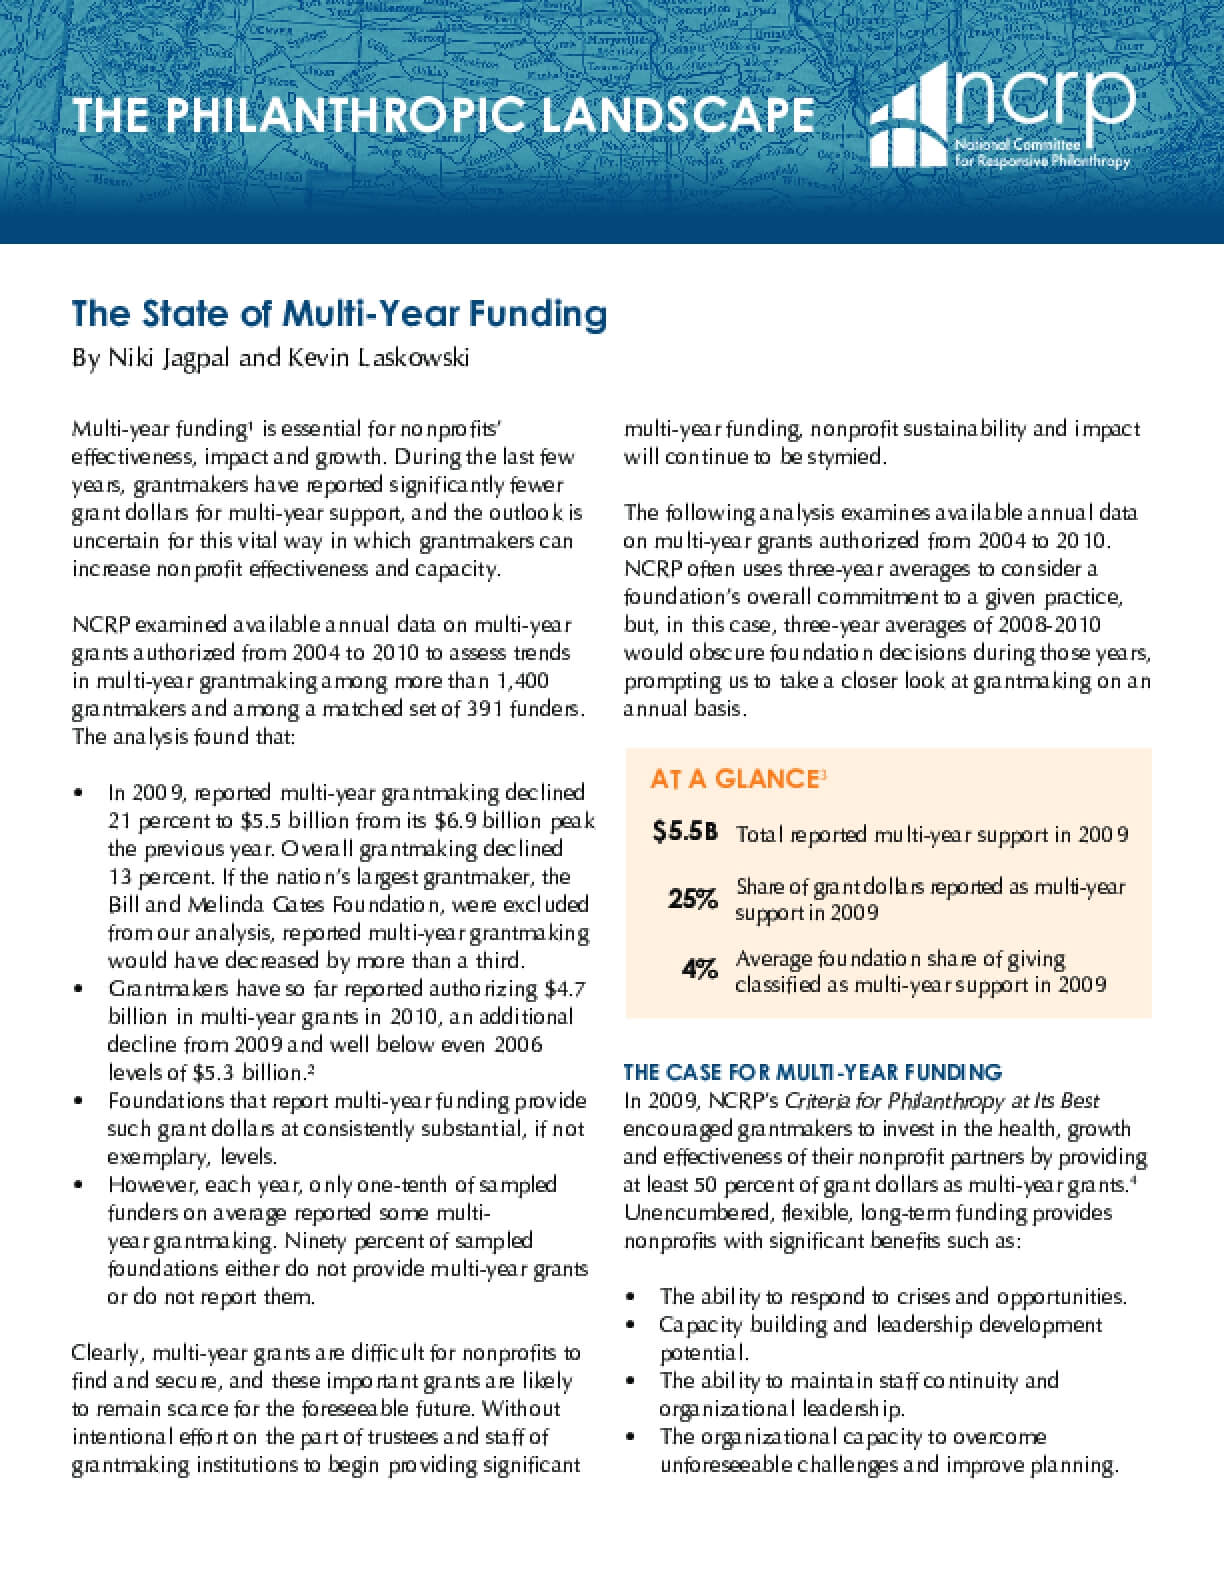 The State of Multi-year Funding